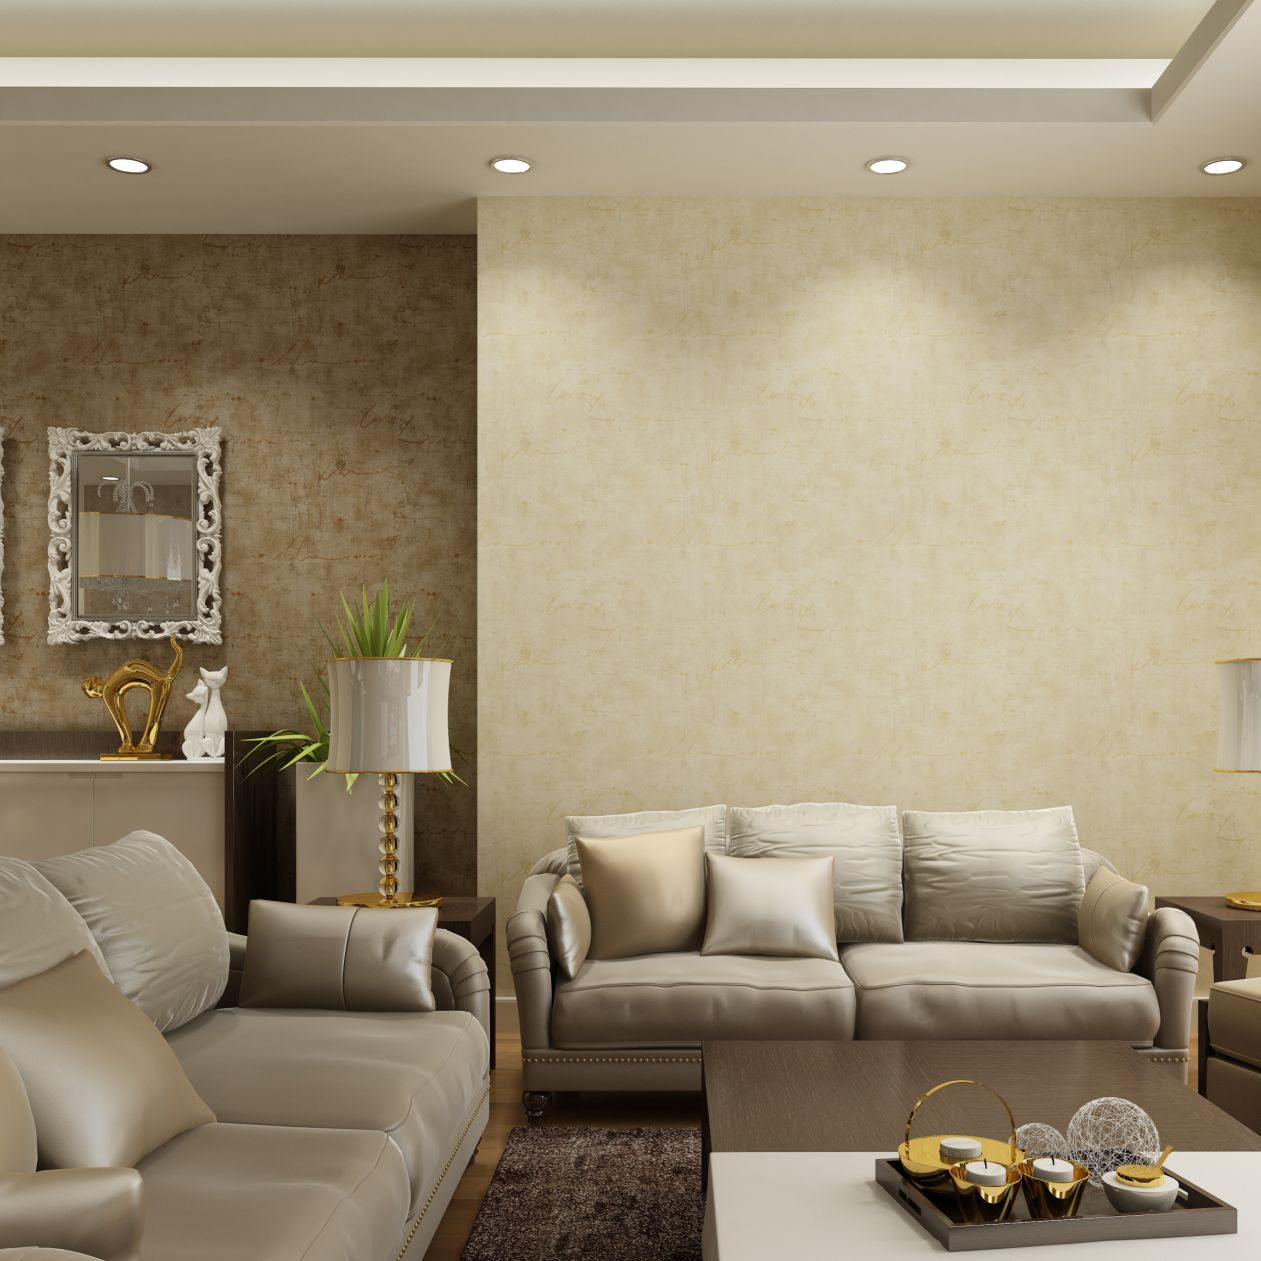 Interior Painting Contractor: Well Known Painting Contractor